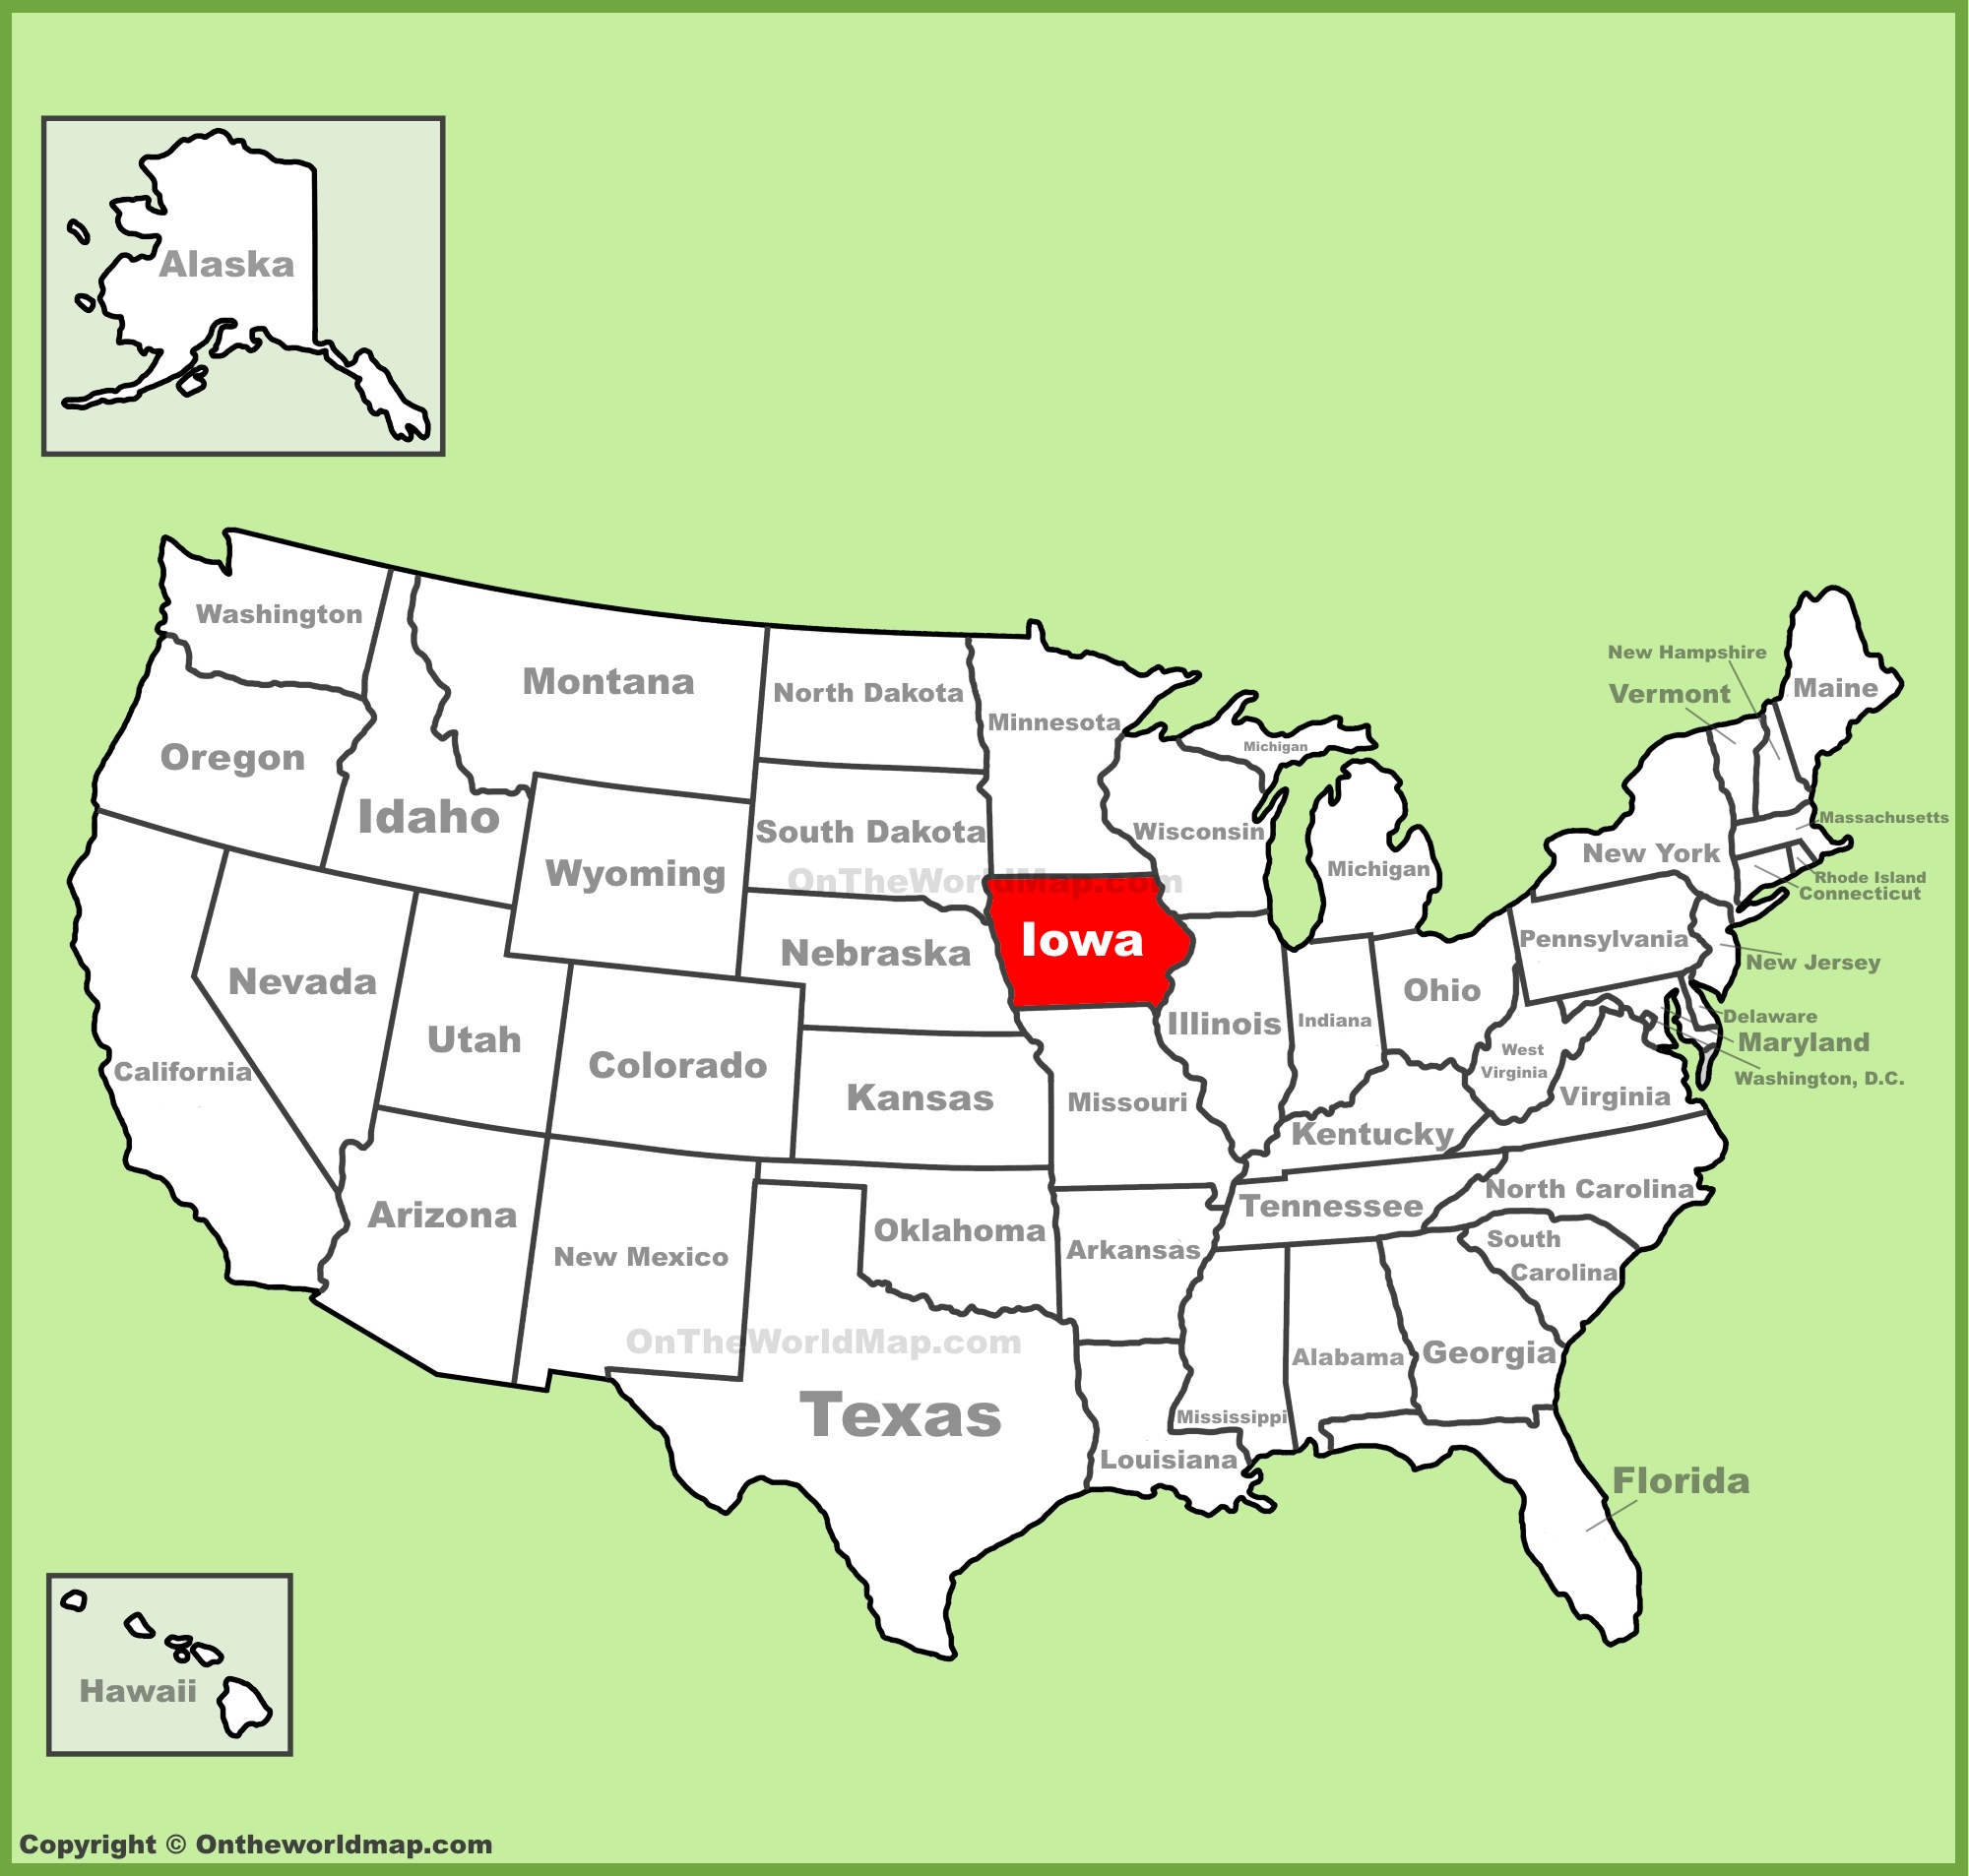 Iowa State Maps | USA | Maps of Iowa (IA)